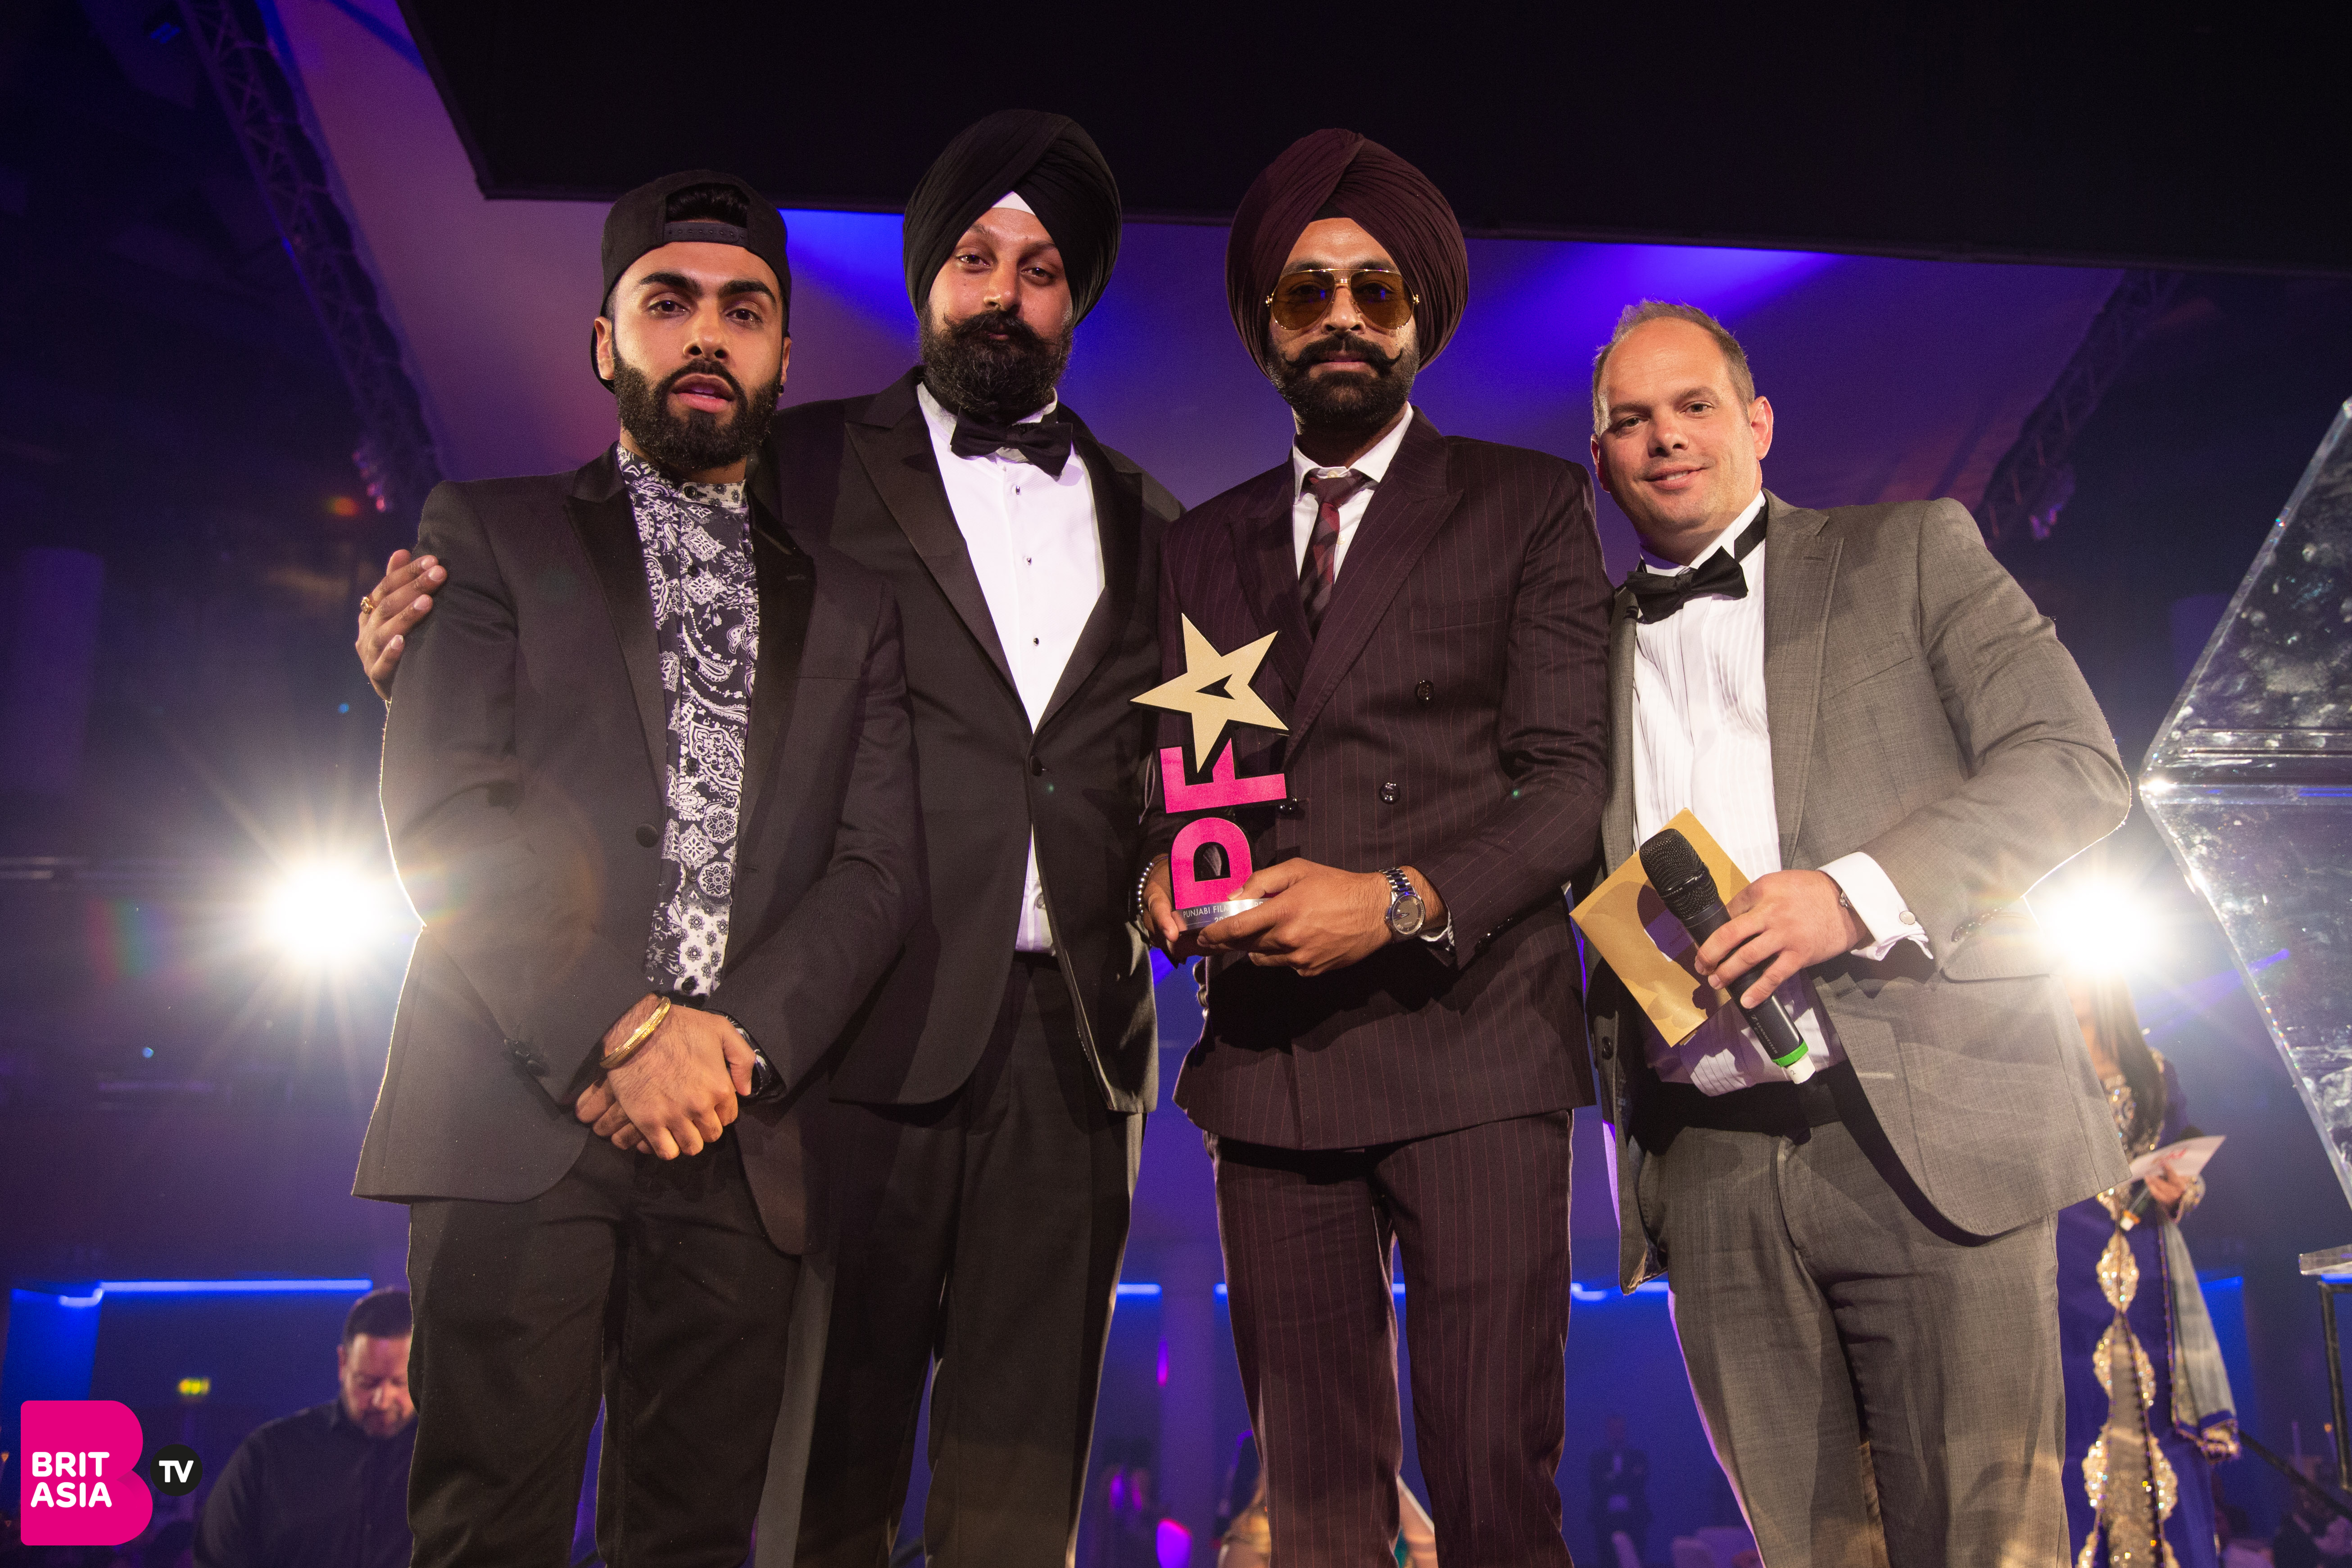 British Asian star Raxstar, CEO of BritAsia TV Tony Shergill, sponsor 8 Outdoor Media present the award for Best Cinematography